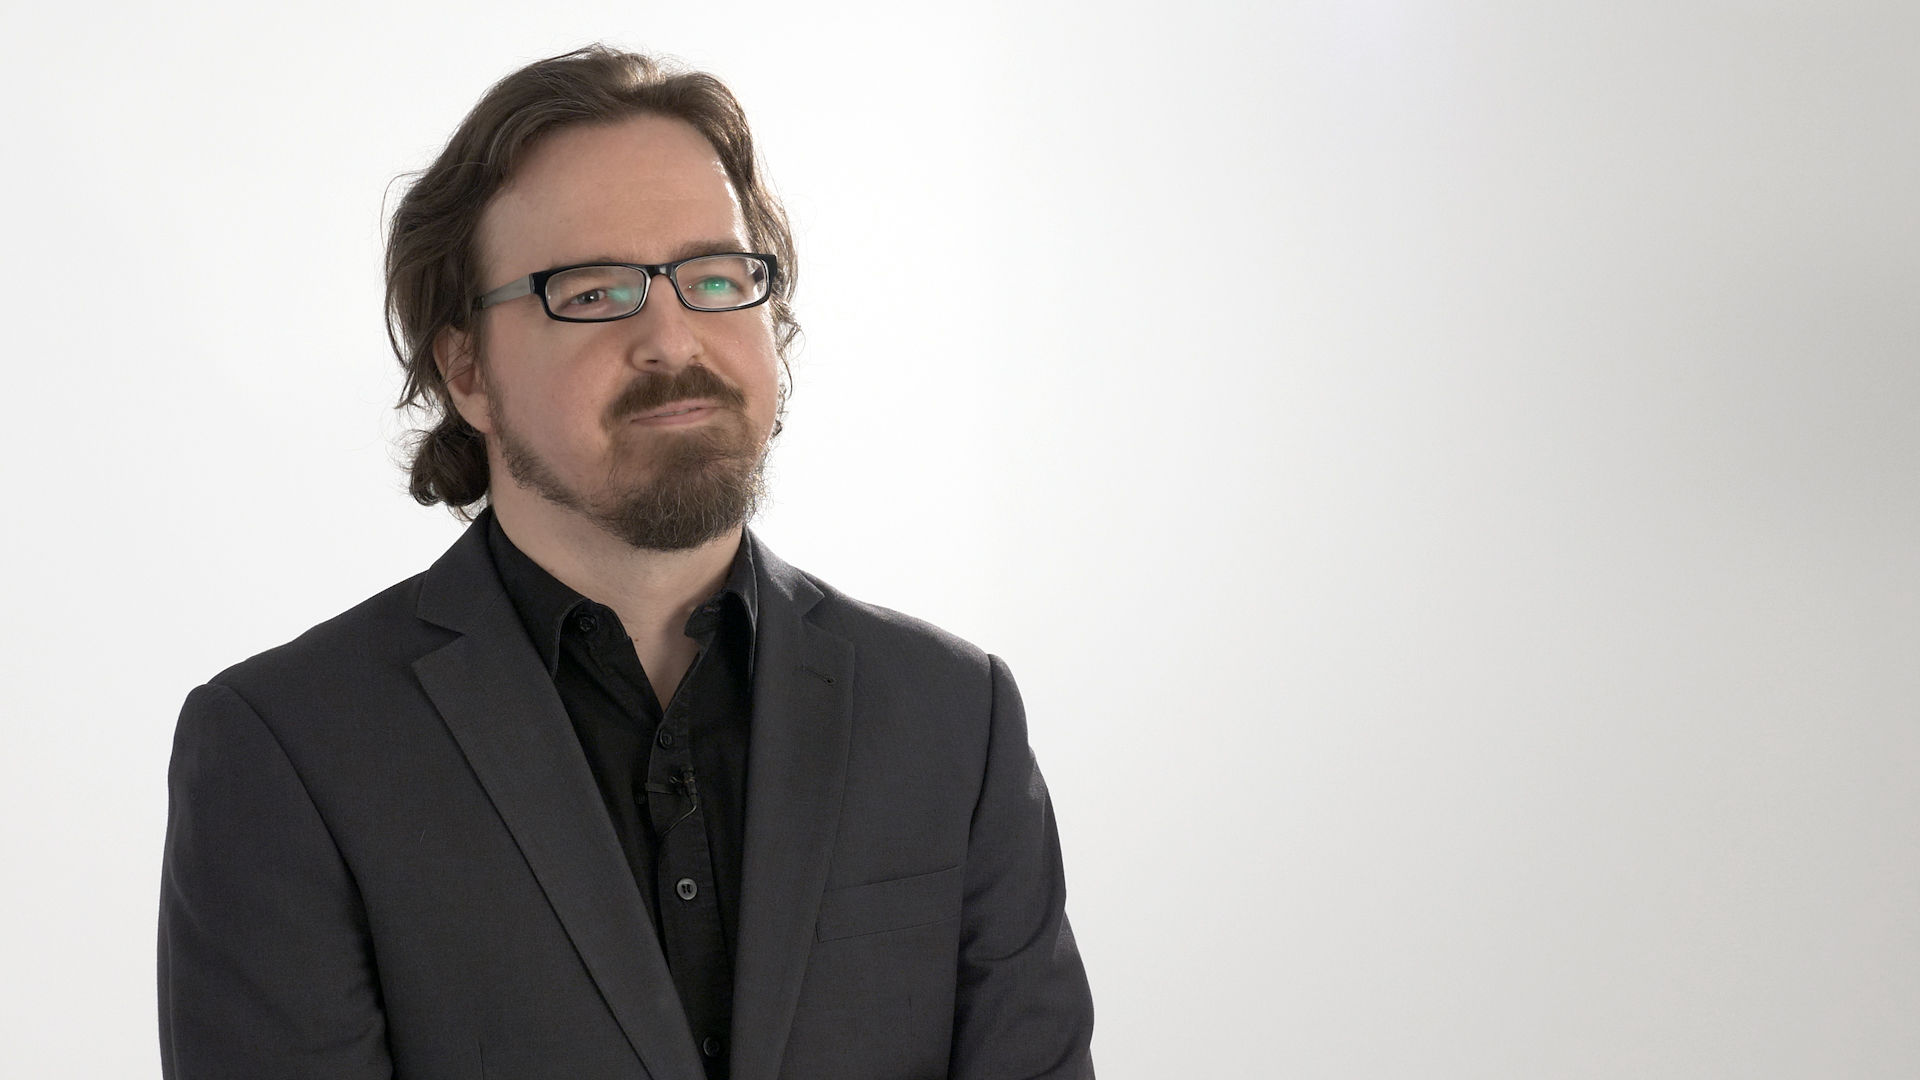 Michael Cameron - President, Creative DirectorAn award winning director and cinematographer, Michael founded Spirit Guide in 2006. He has since worked with international recording artists and renowned brands the world over.